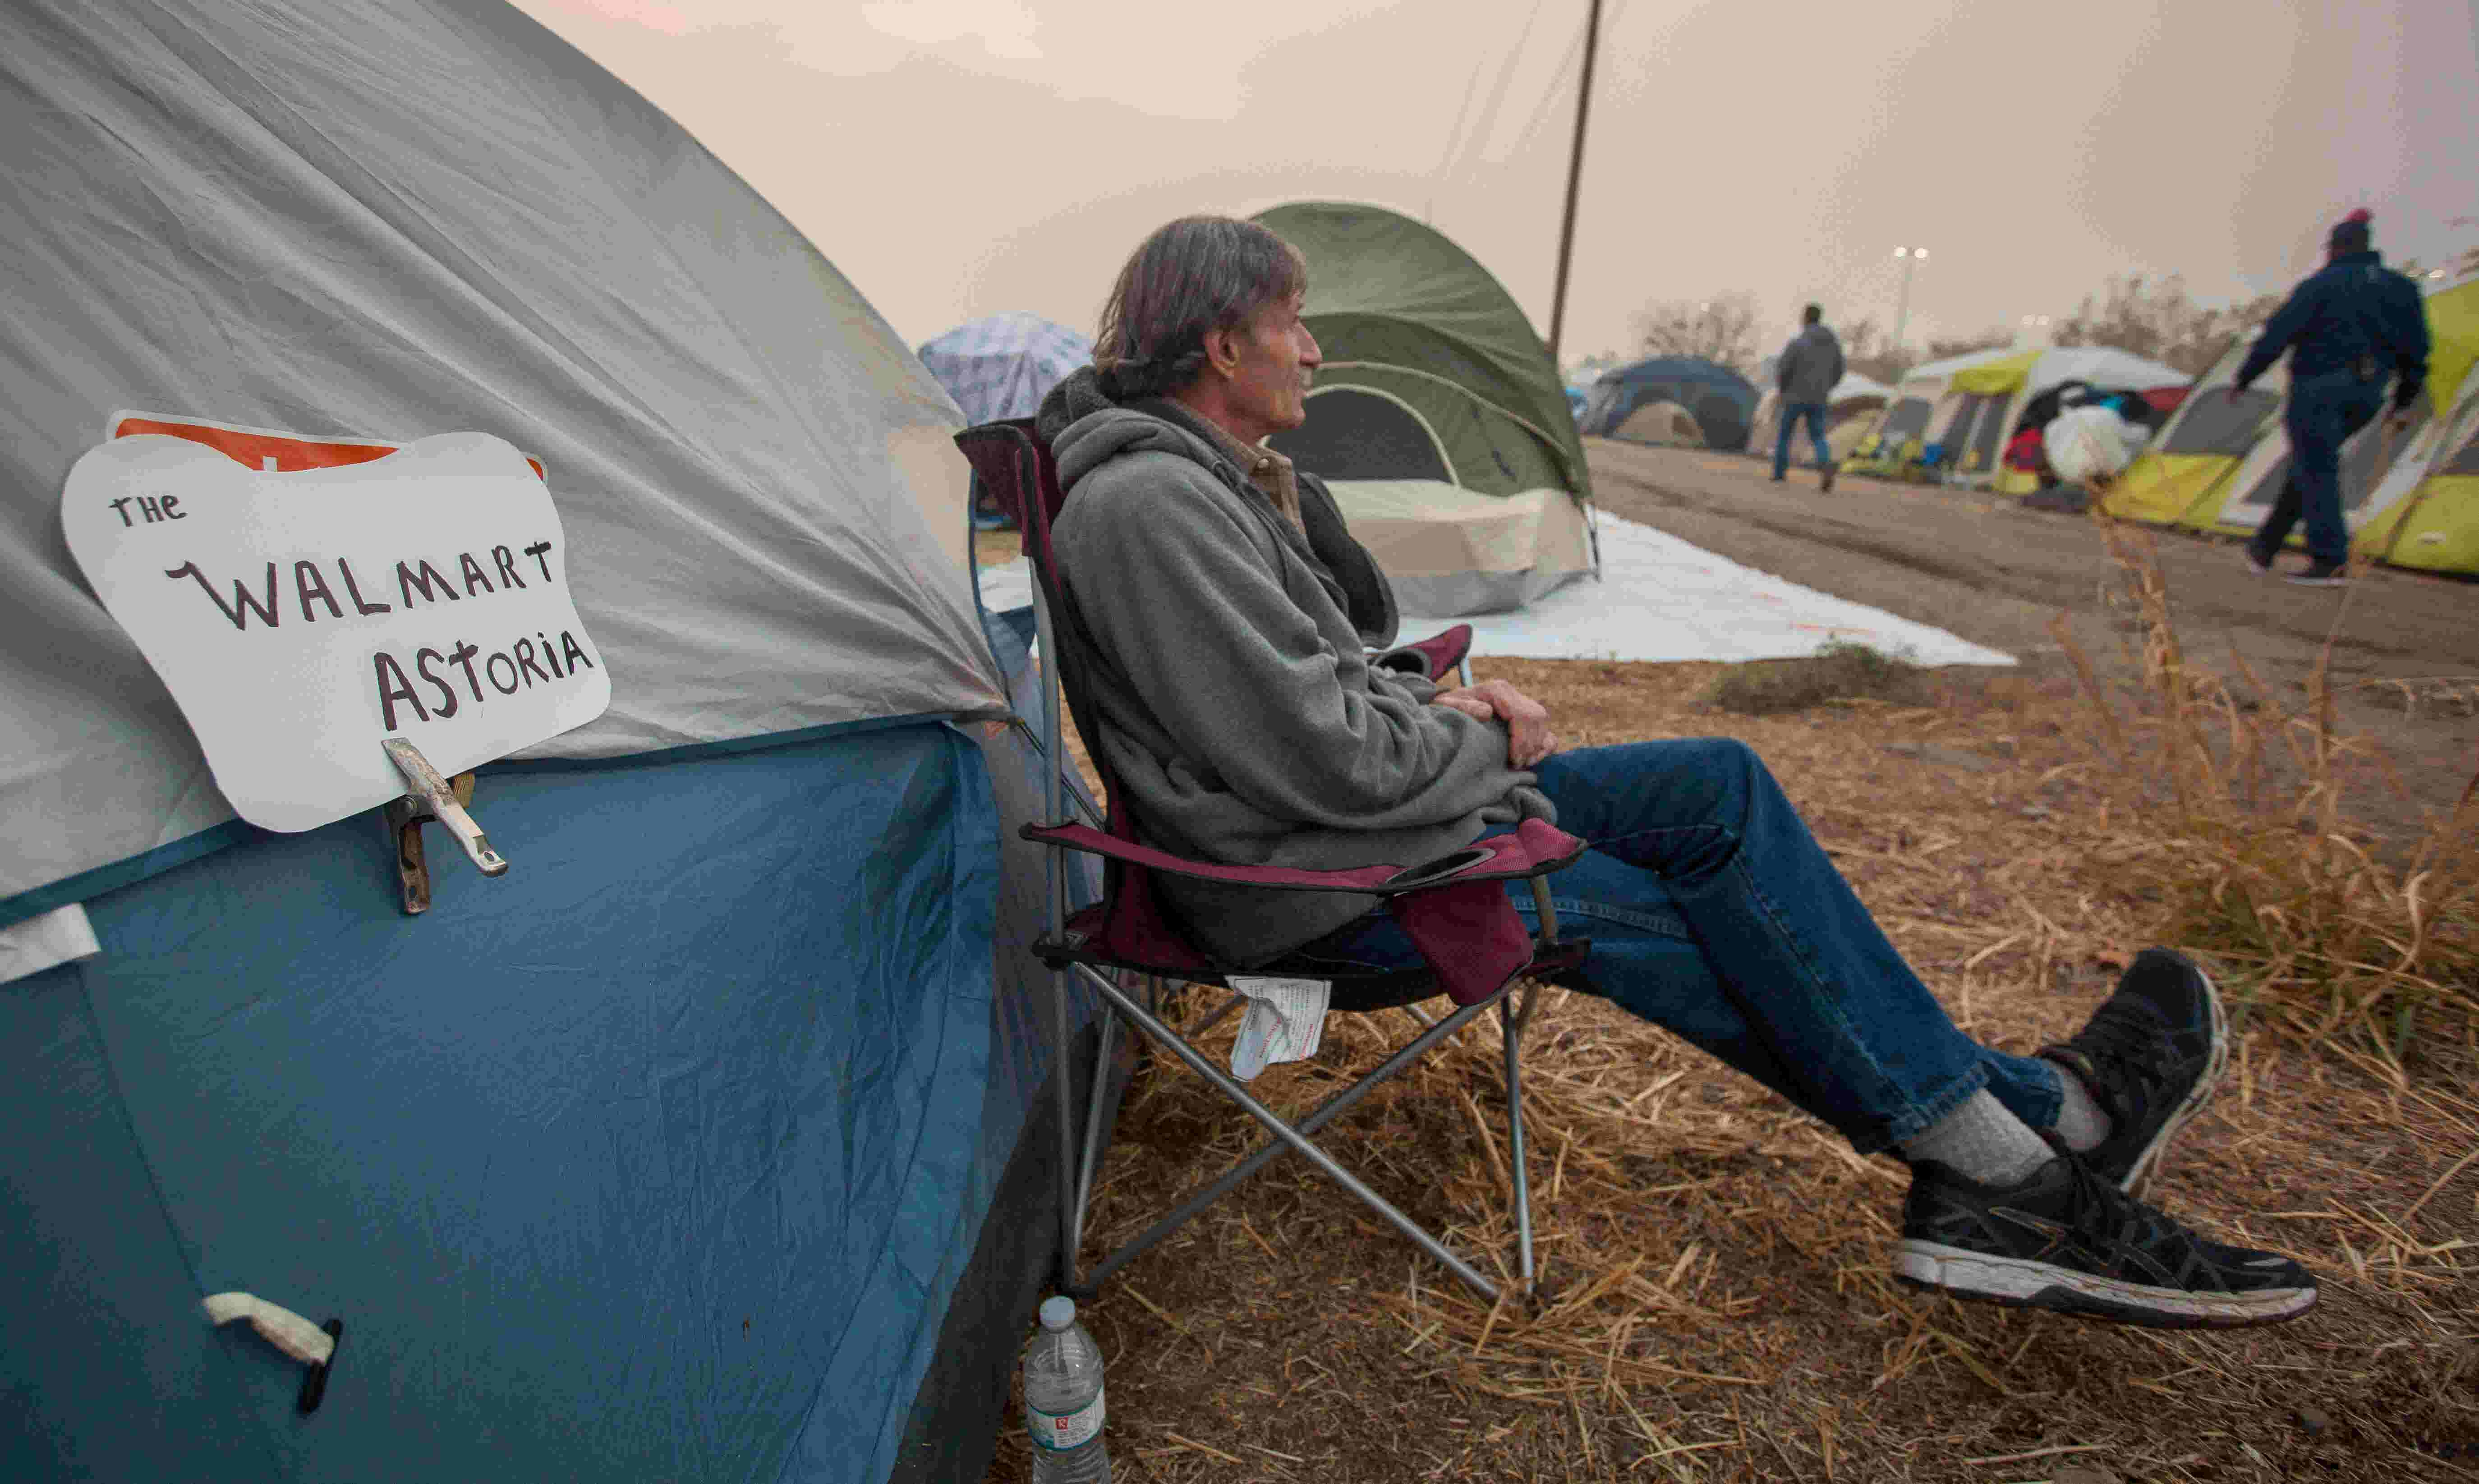 WATCH: Camp Fire evacuees at a tent city in a Walmart parking lot